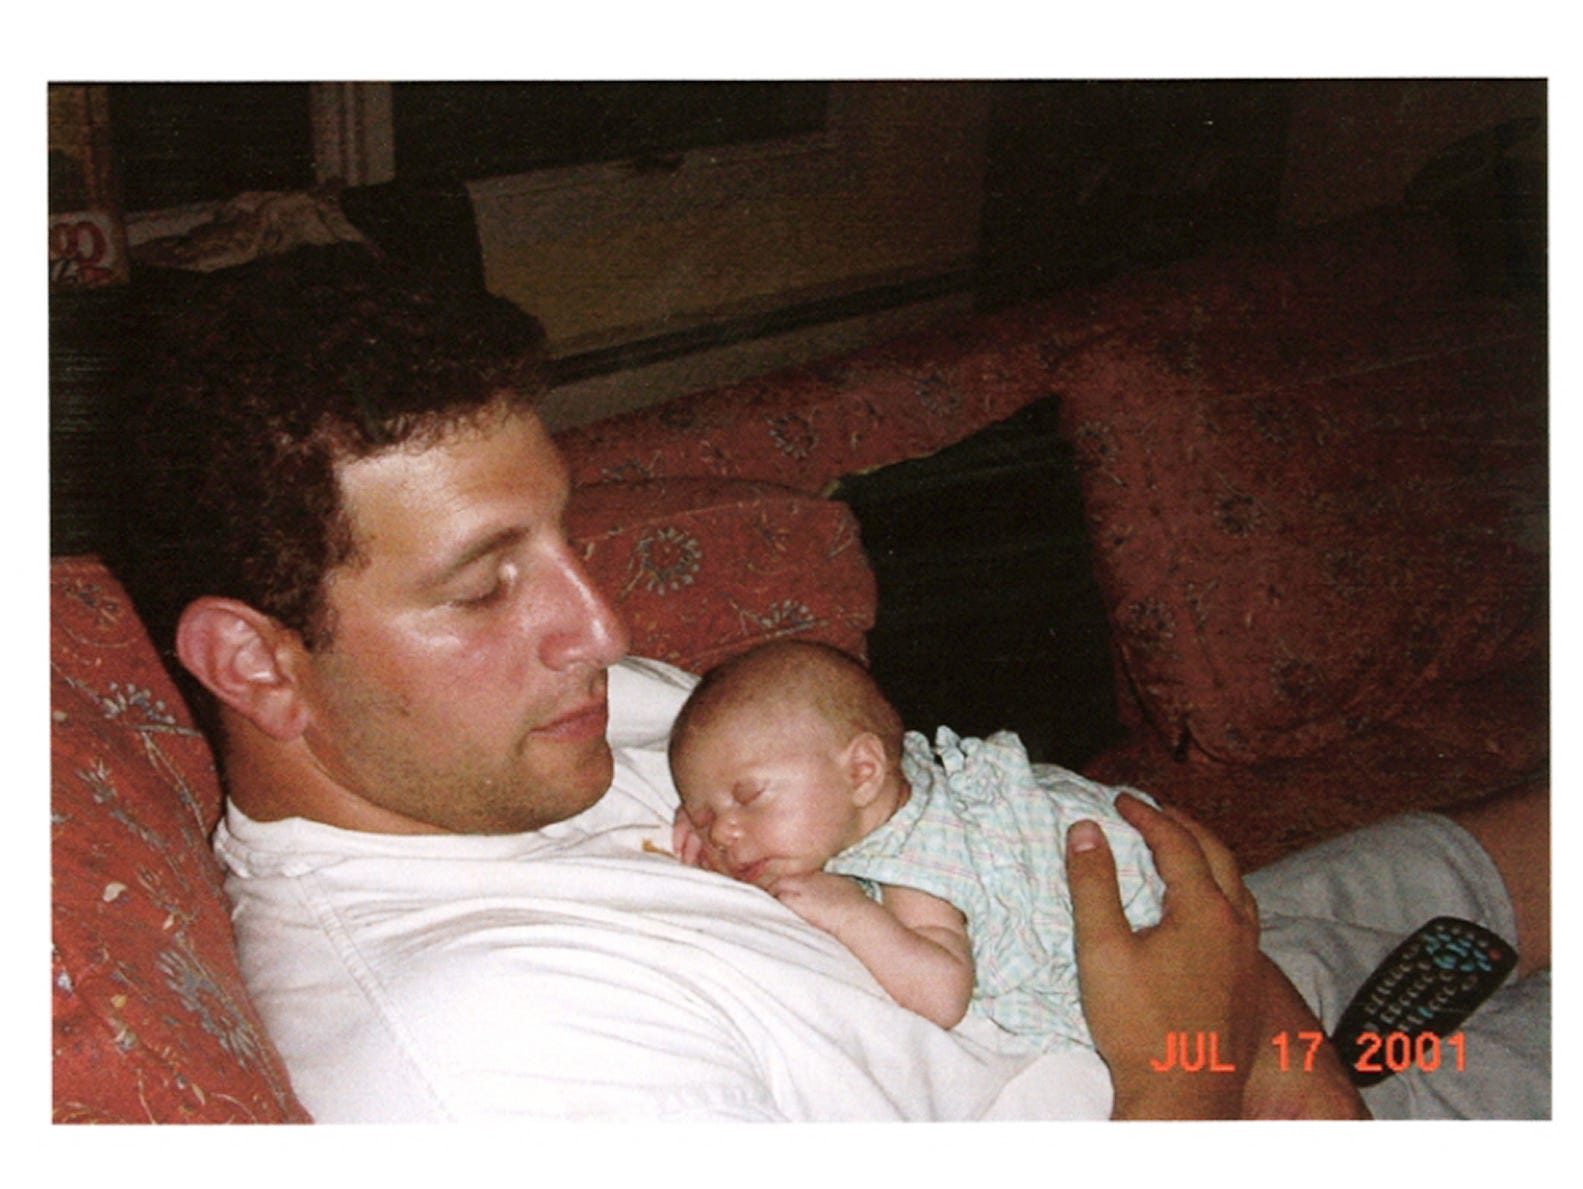 Jeremy Glick, 31, of West Milford, N.J., is shown with his daughter Emerson in this July 17, 2001, photo.